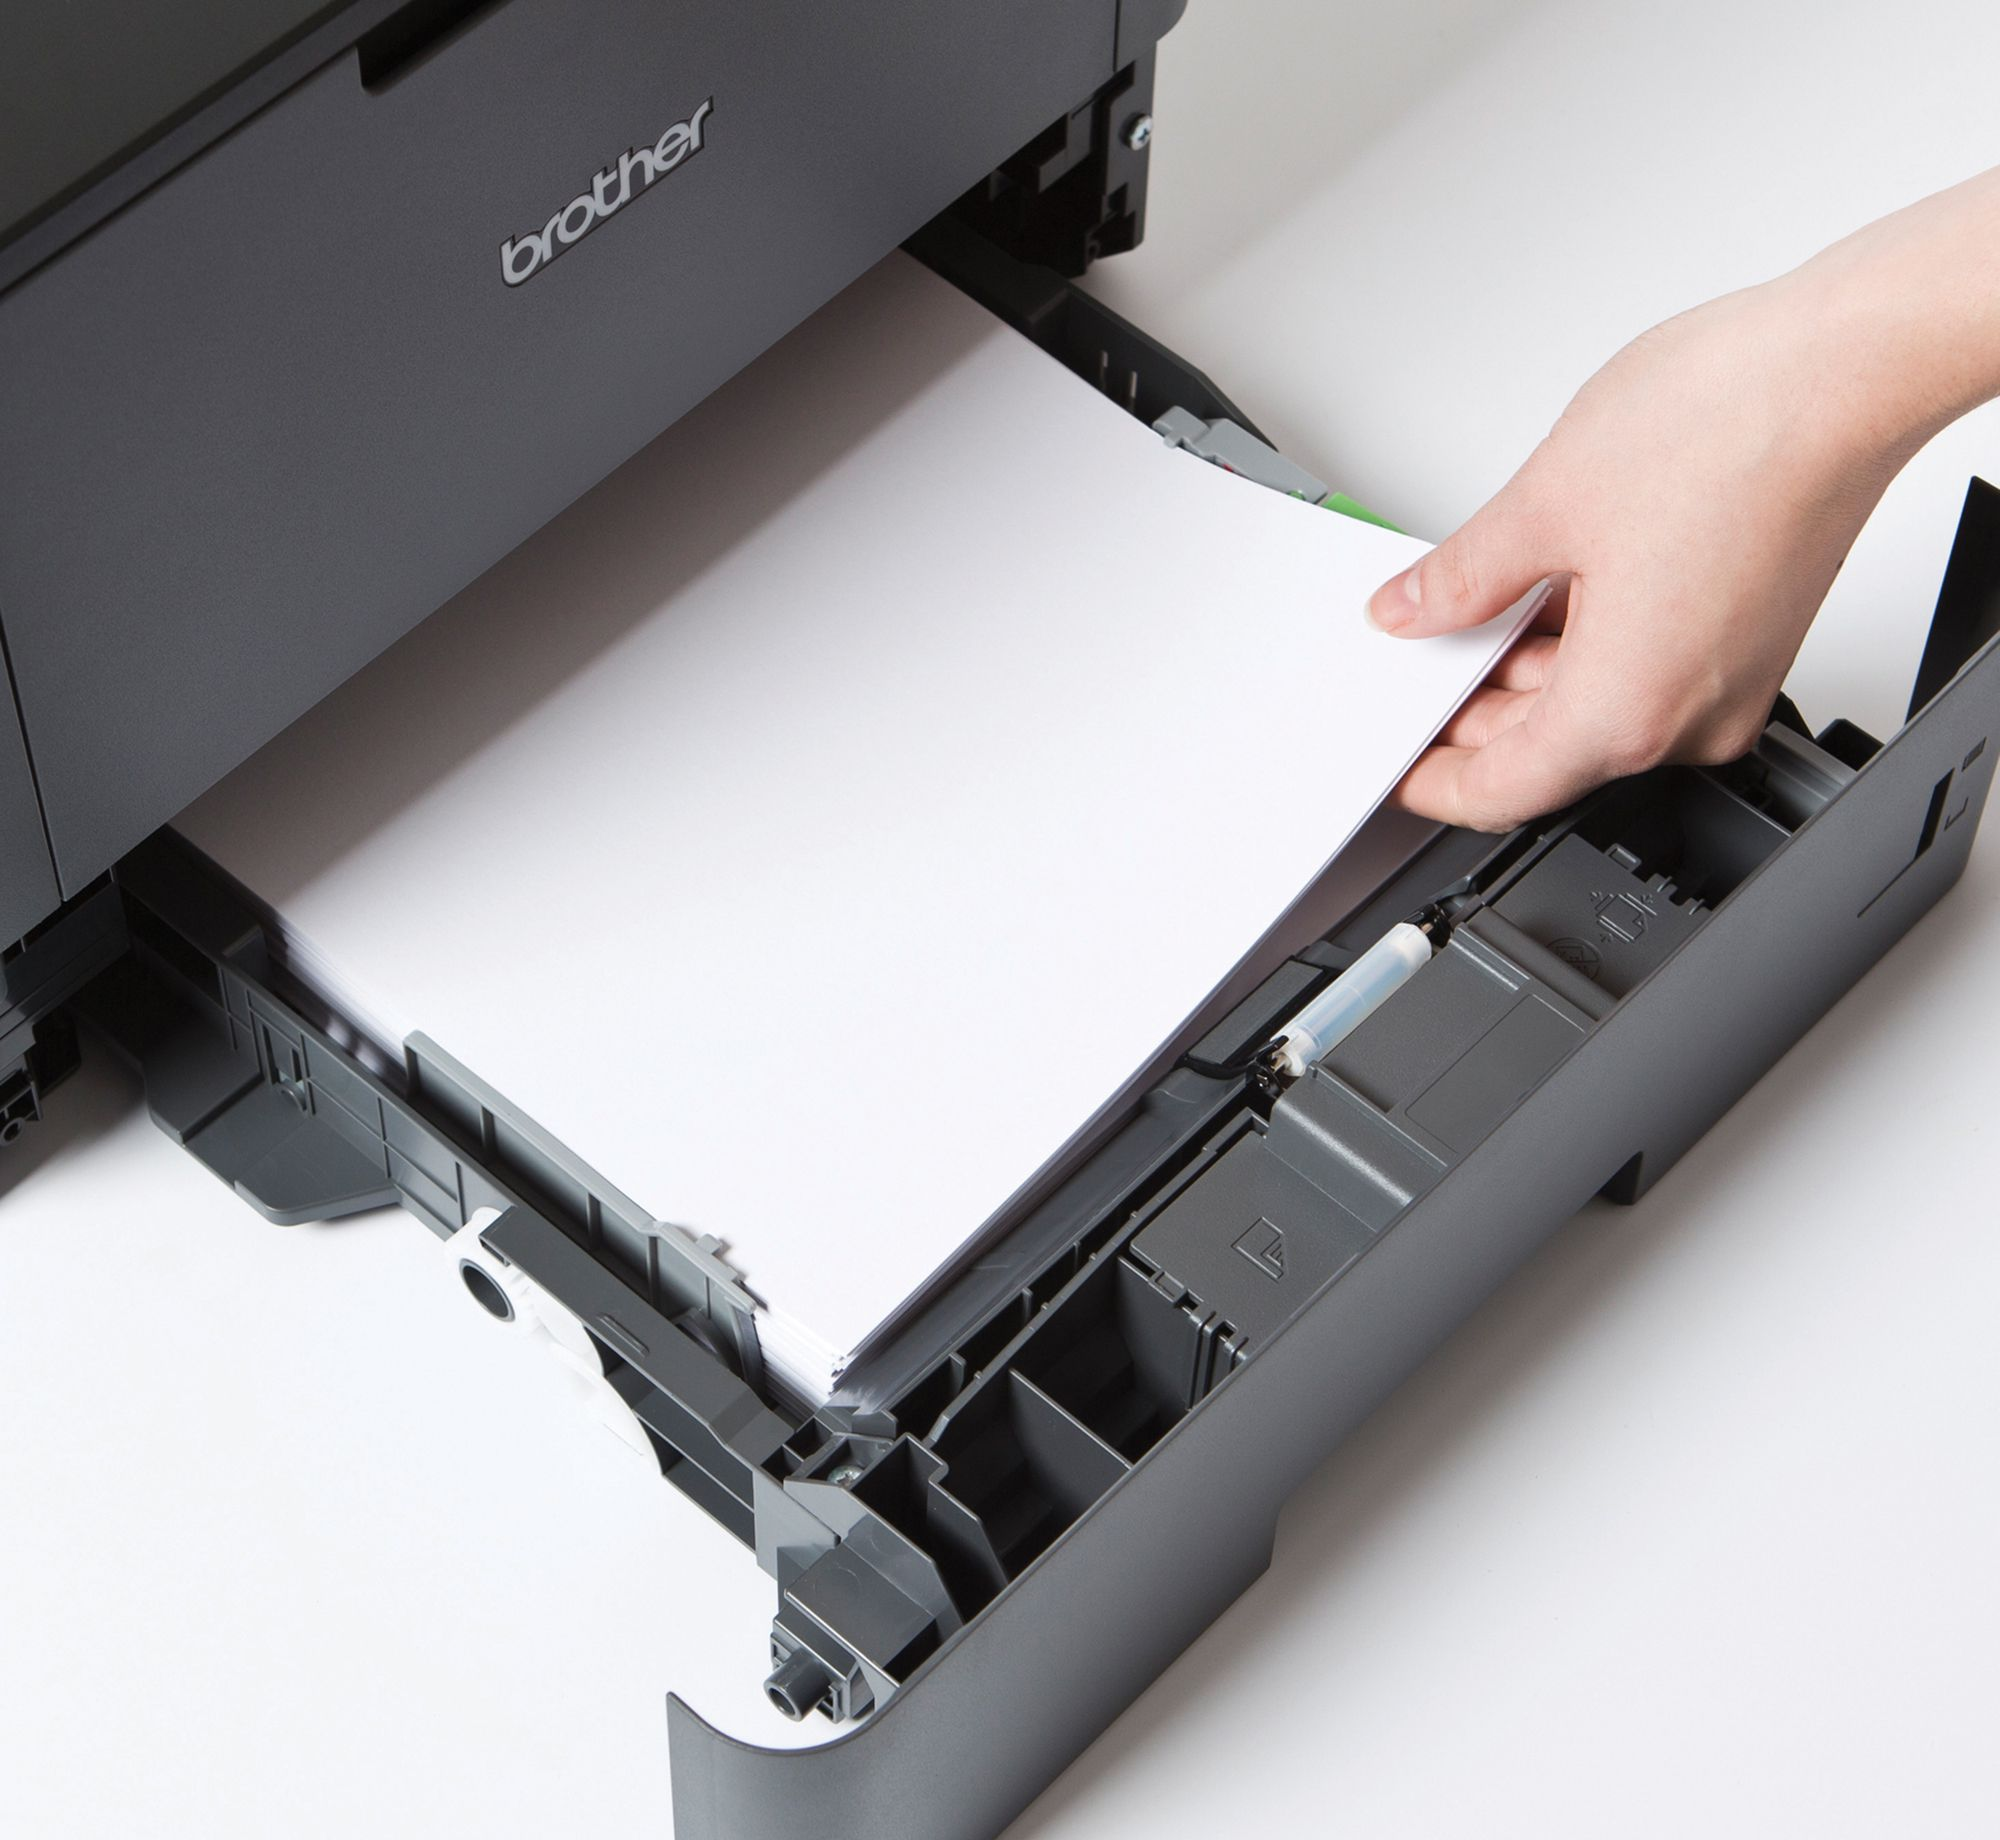 The 7 Best Laser and Laser-Class (LED-array) Printers